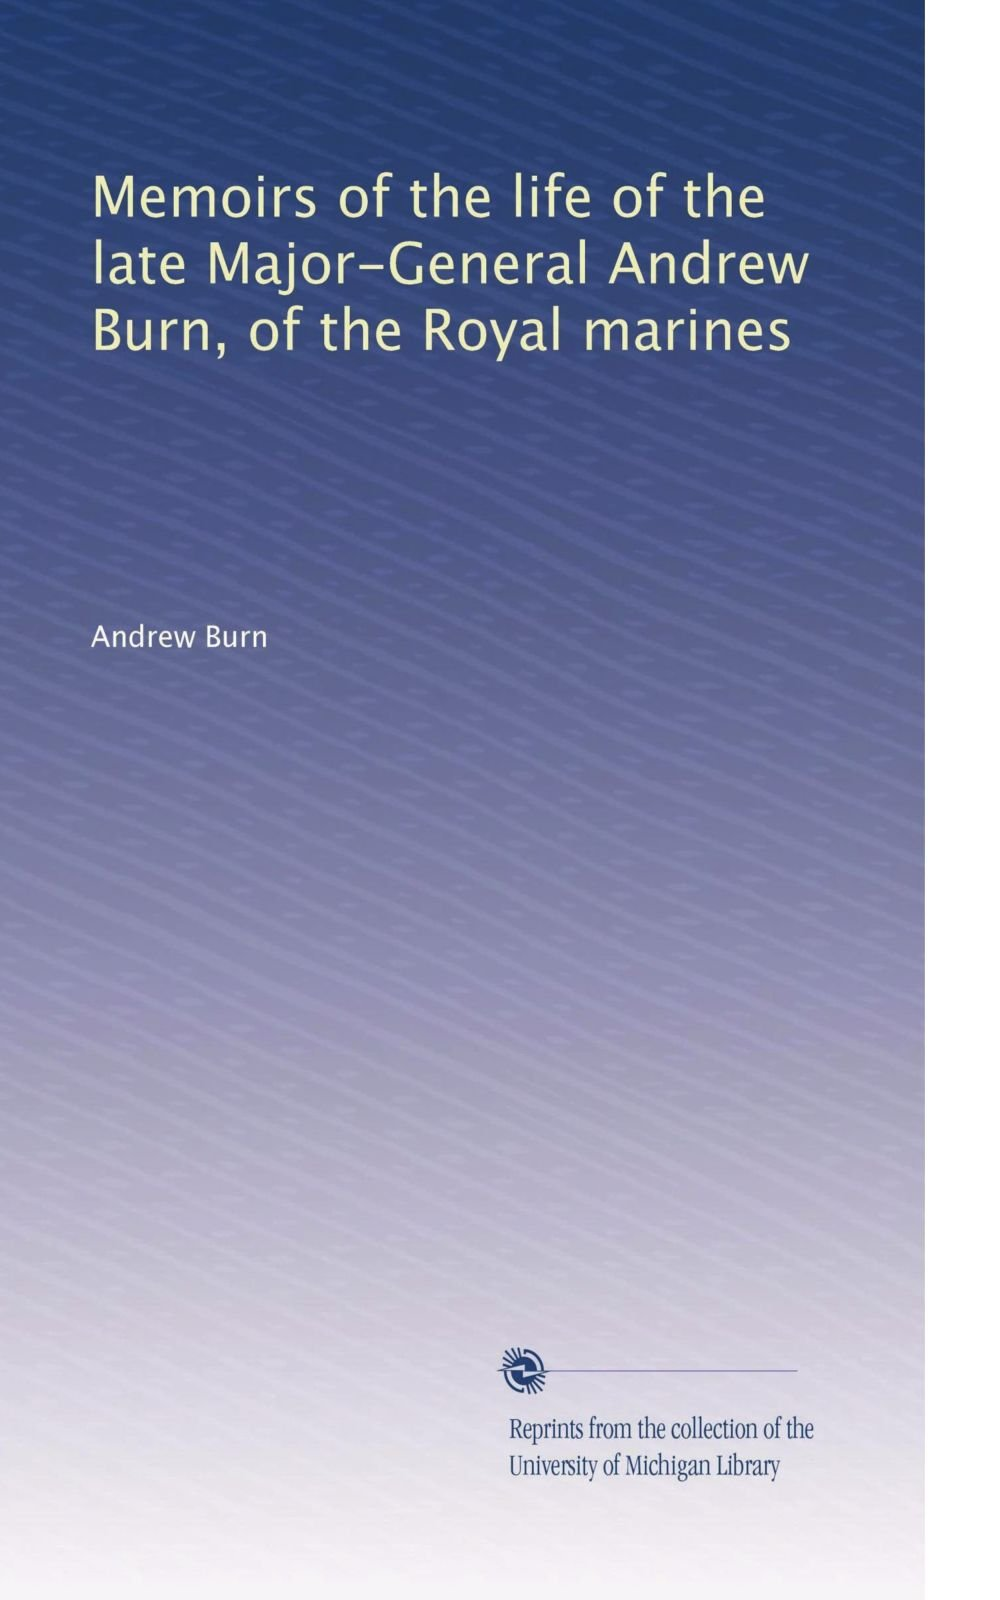 Download Memoirs of the life of the late Major-General Andrew Burn, of the Royal marines pdf